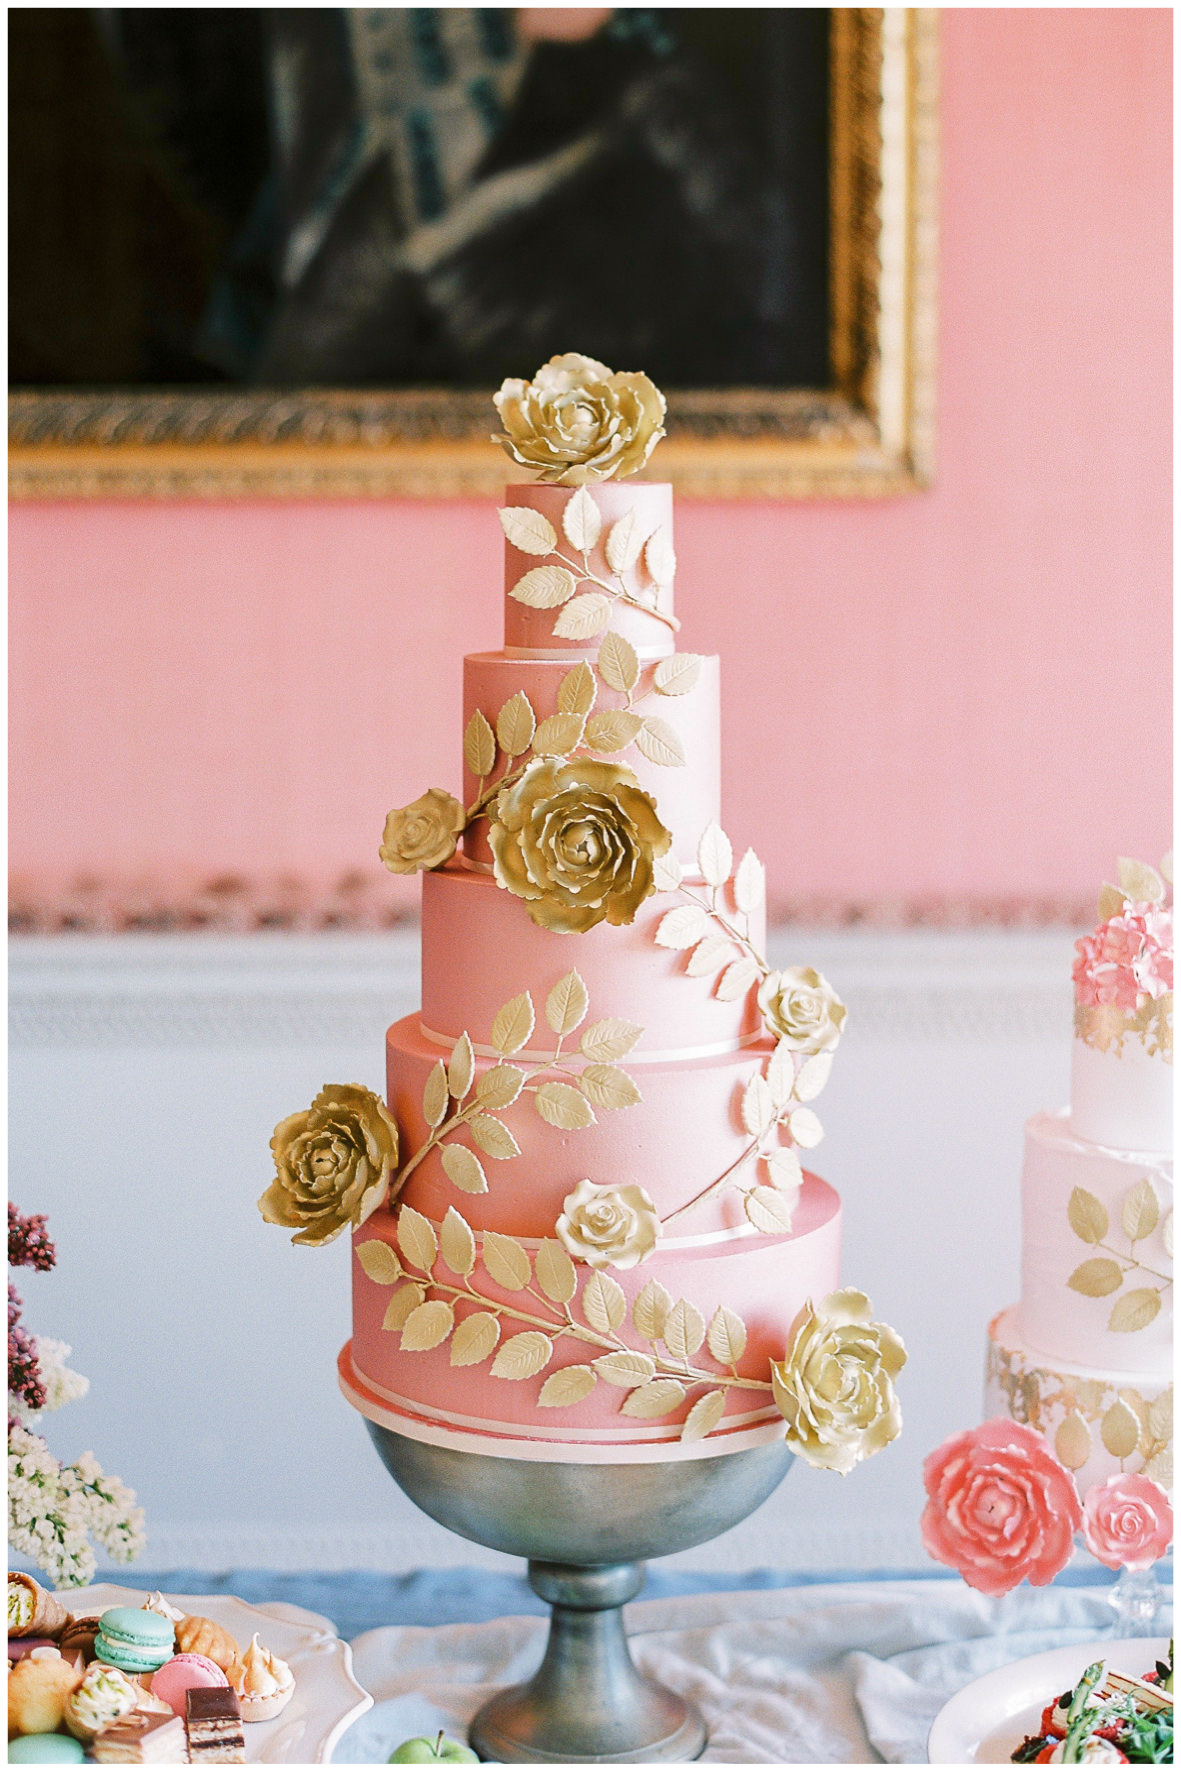 Lucy Davenport Photography, Holdenby House, wedding venue, Northamptonshire, dessert station, Princess Patisserie, wedding cake,